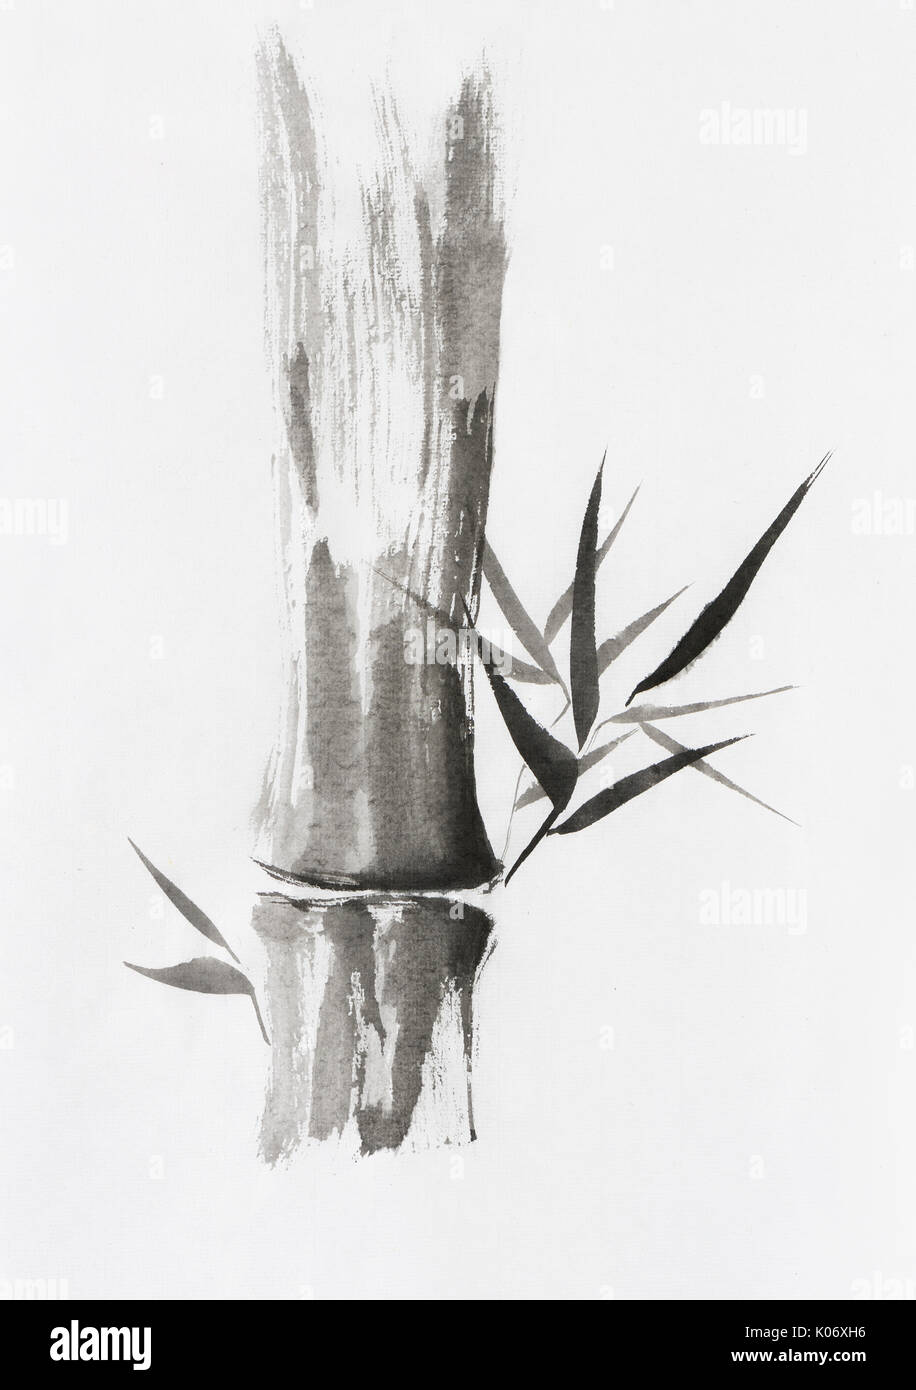 Beautiful Zen painting of bamboo stalk and leaves. Sumi-e Chinese Japanese black ink on rice paper painting fine art. - Stock Image